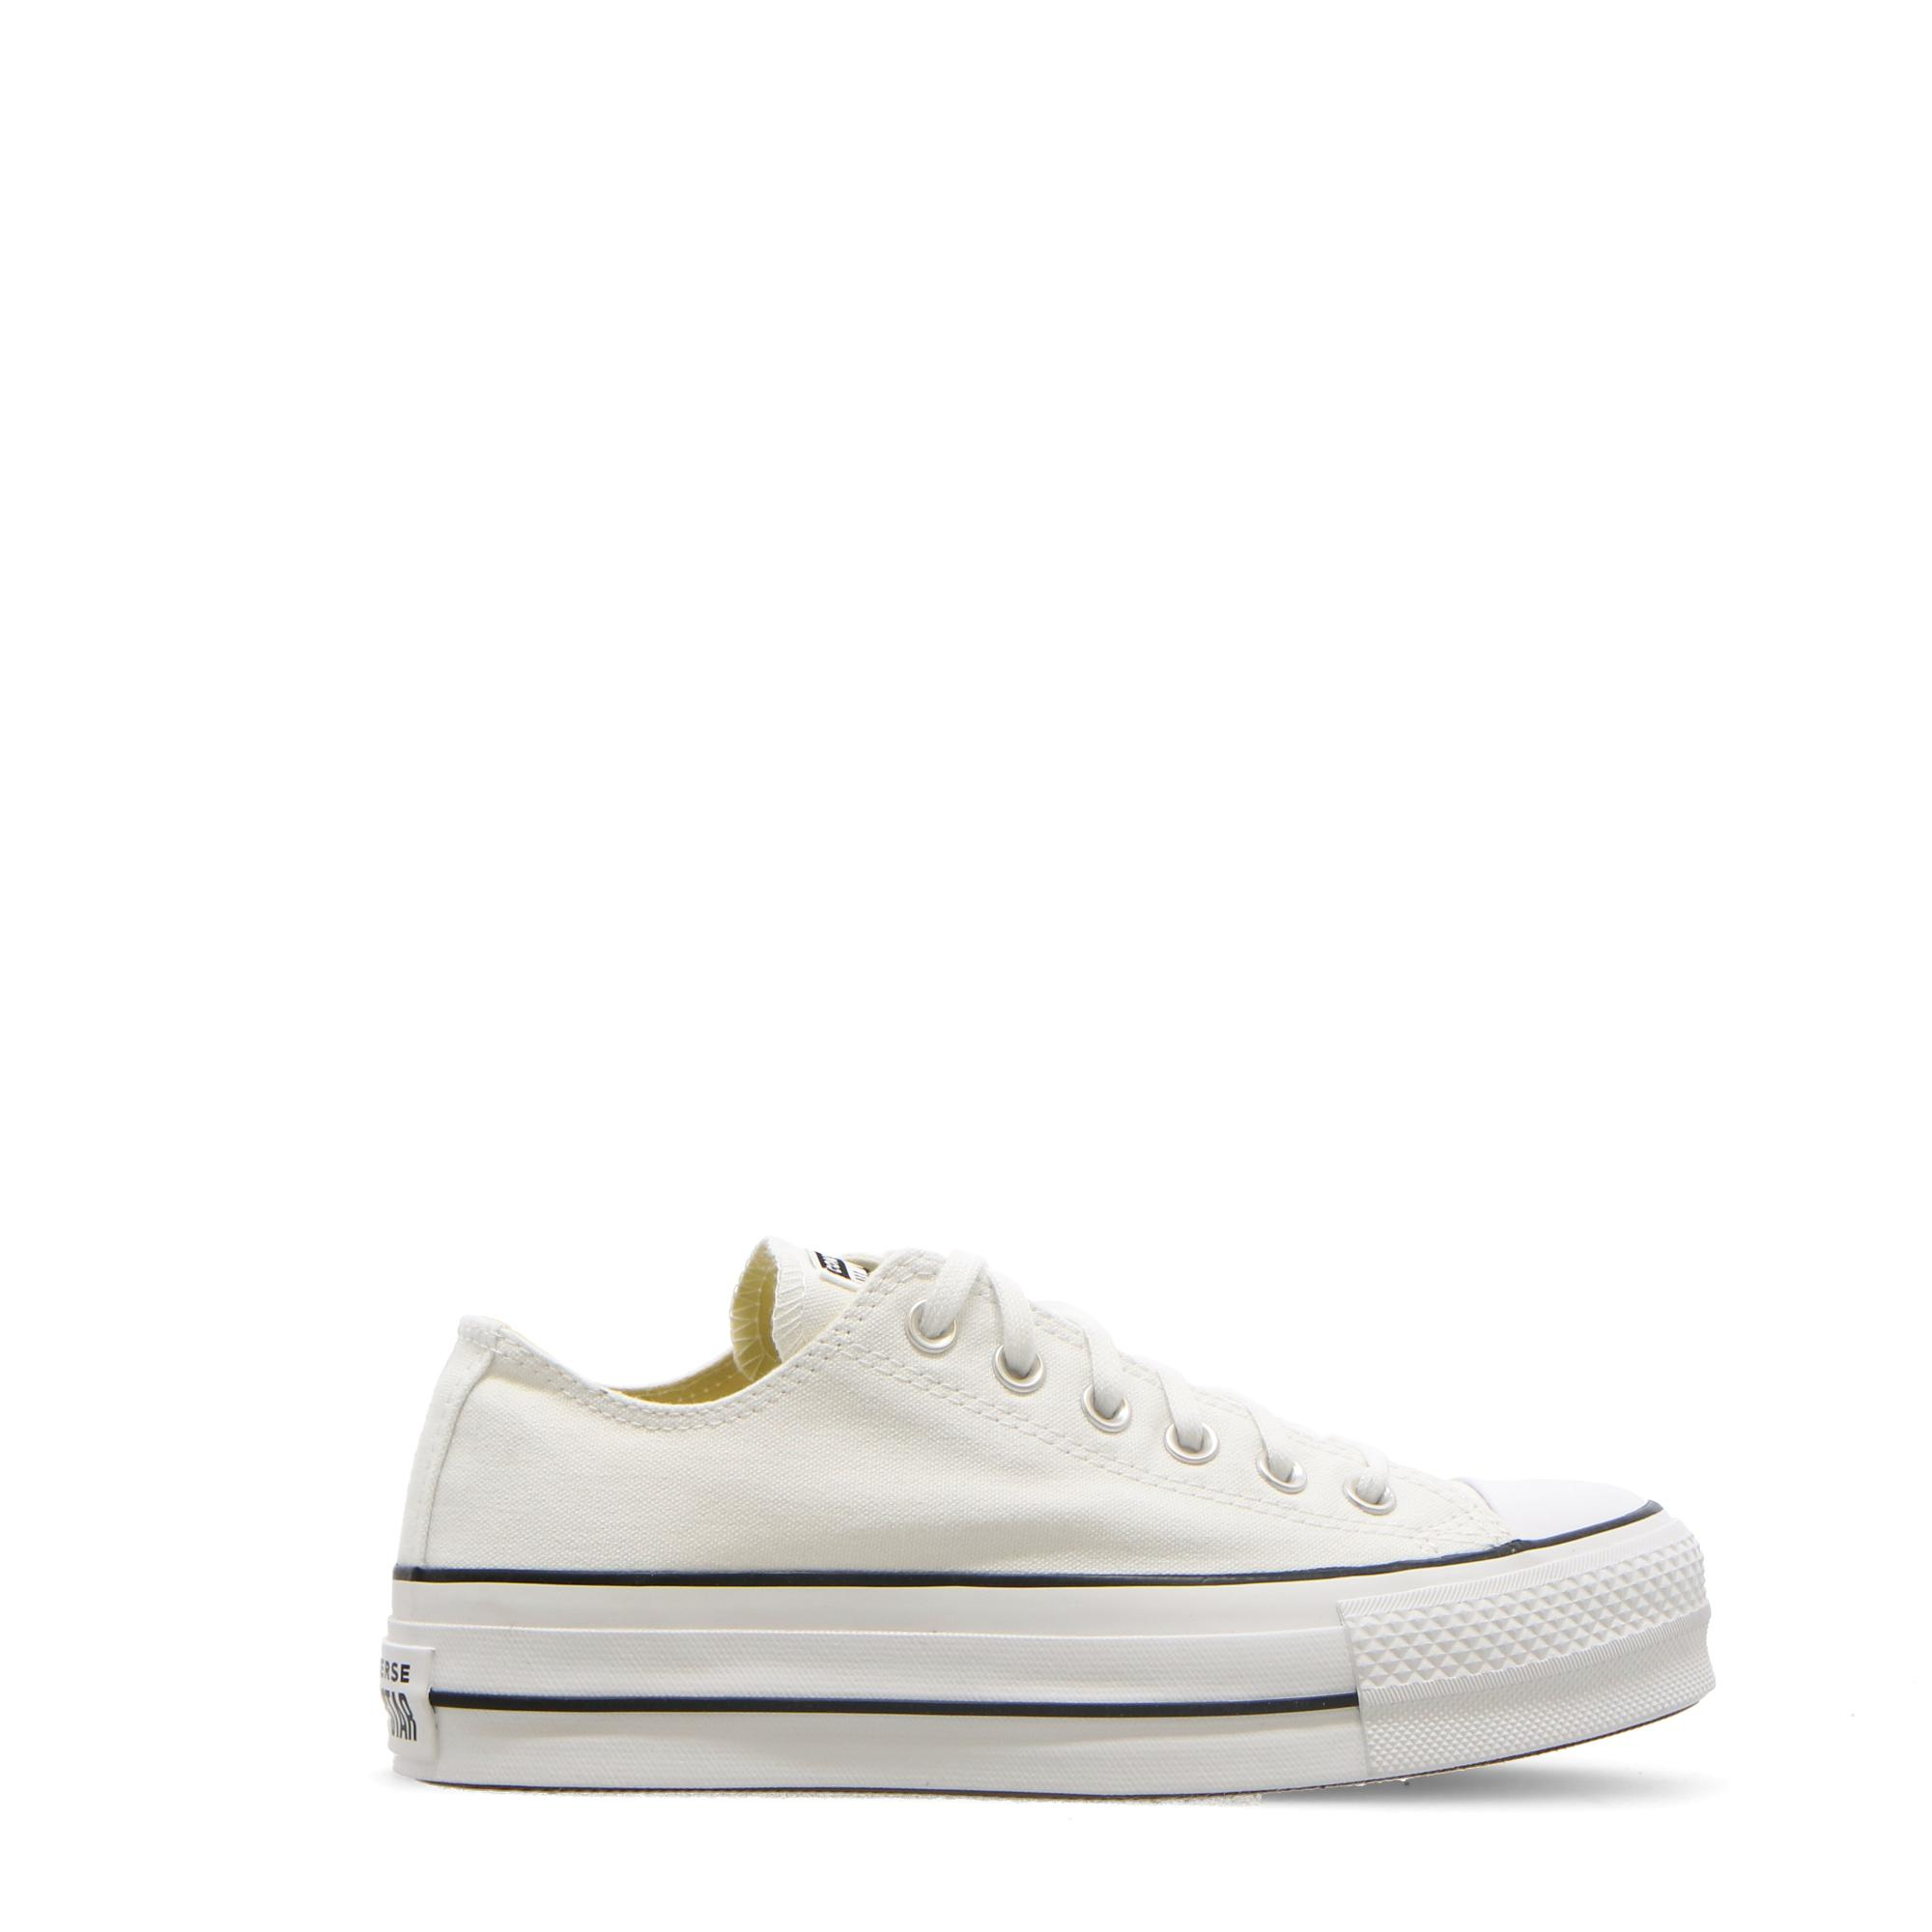 Converse Chuck Taylor All Star Lift Ox White black WHITE